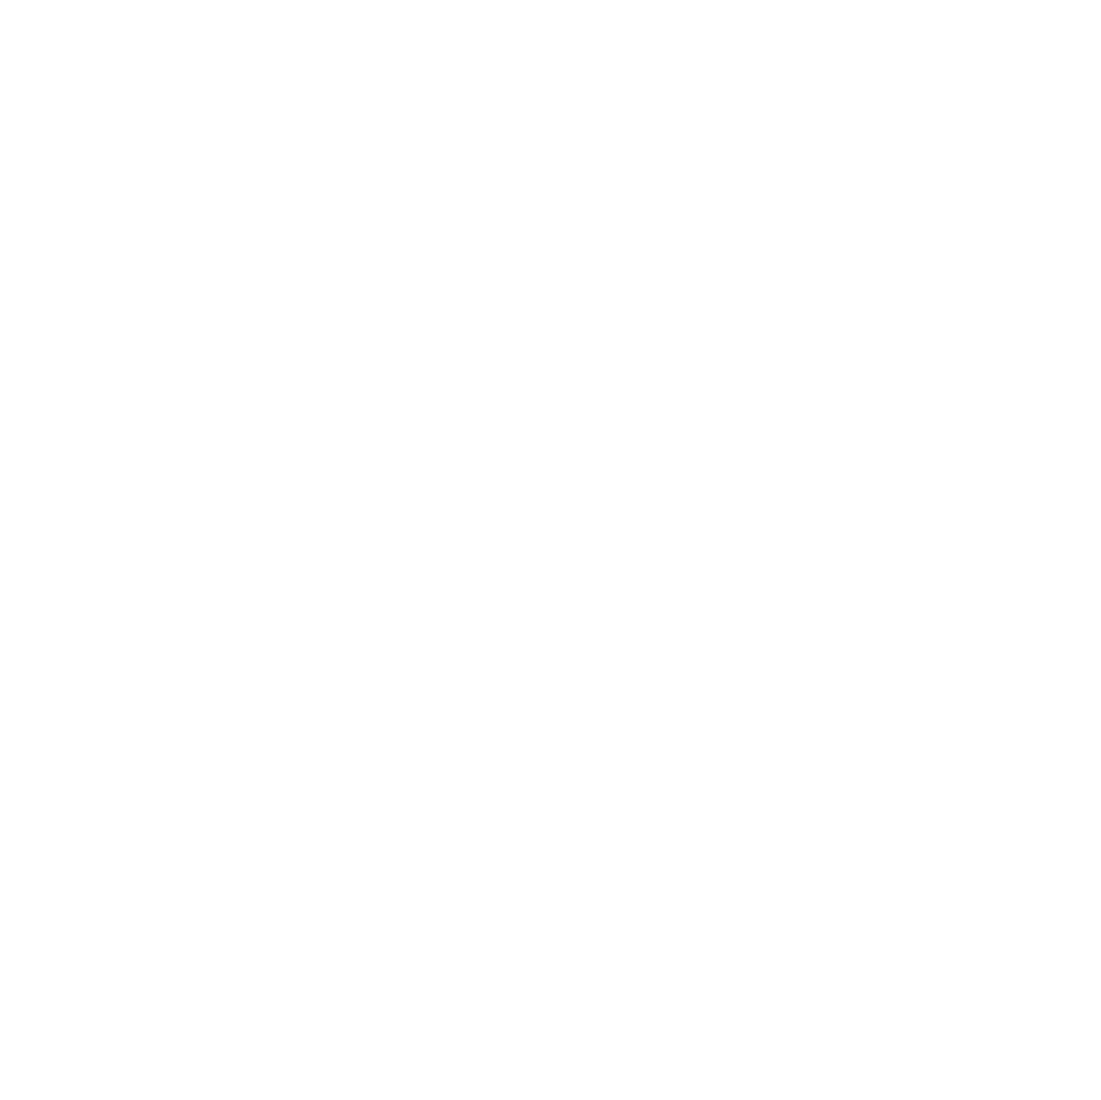 Certified Louisiana Retirement Community